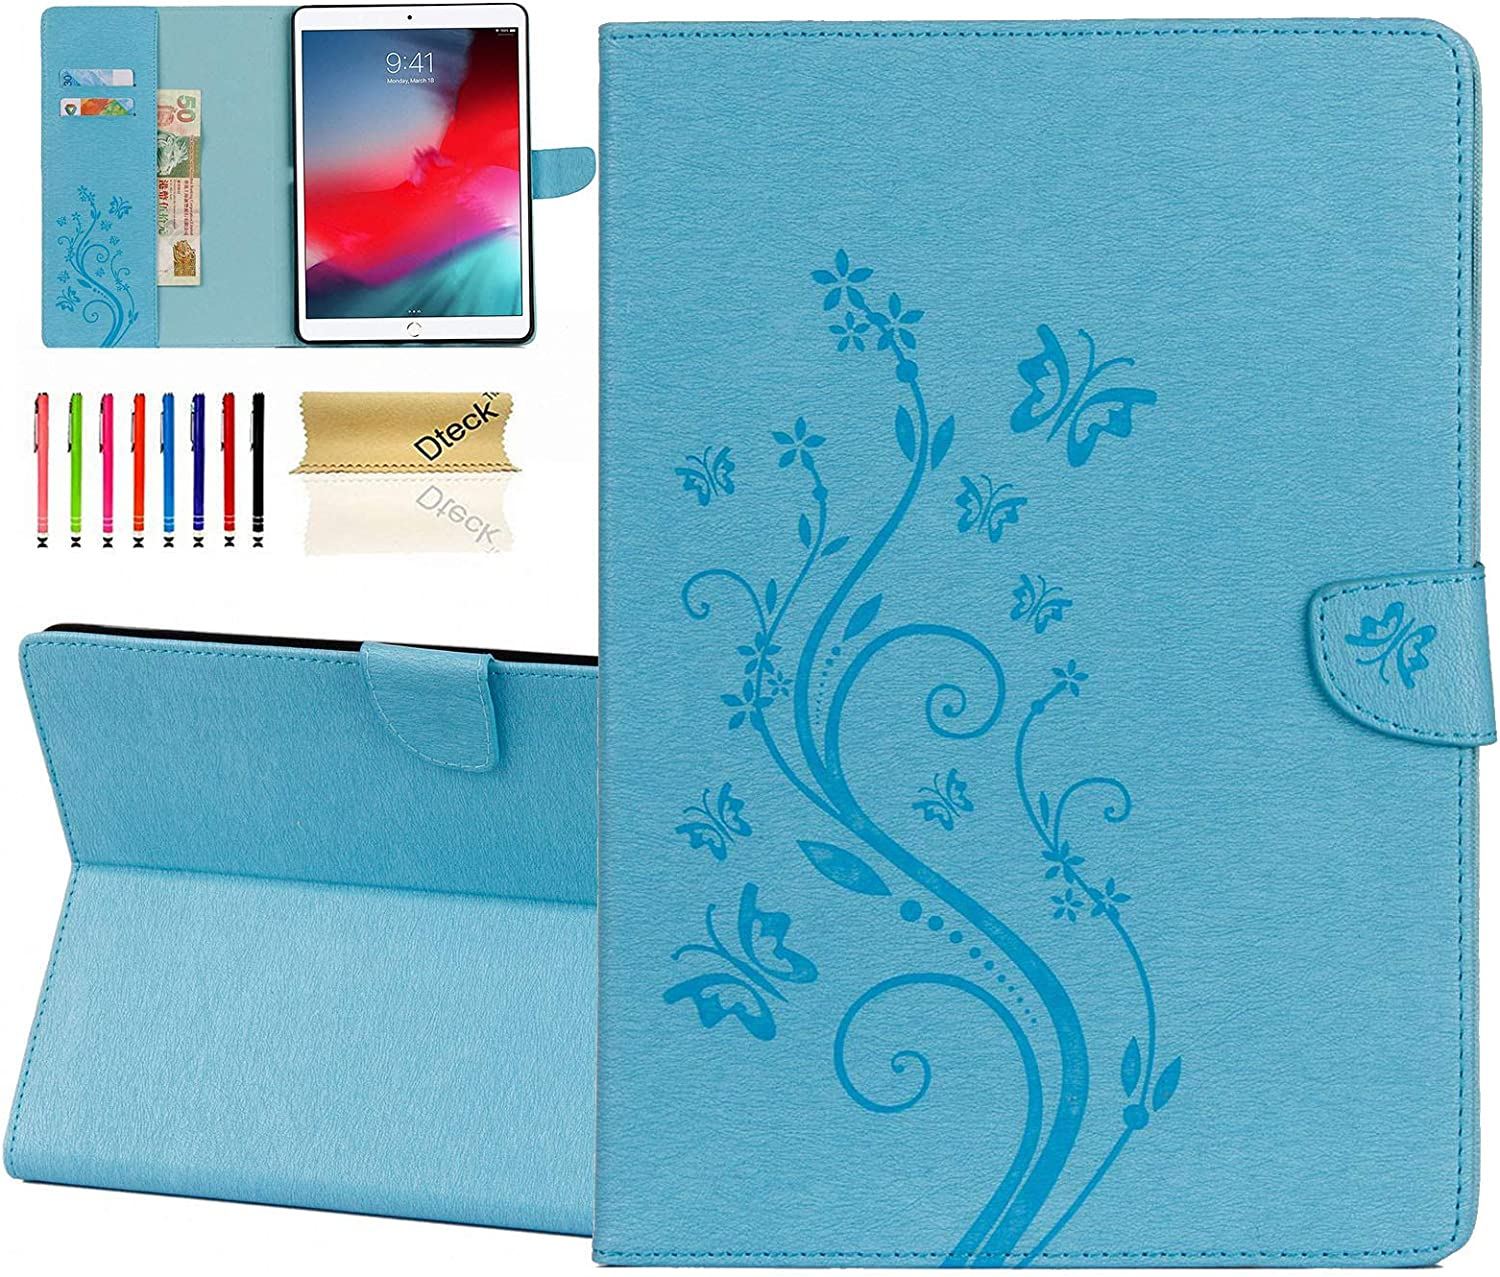 Dteck Case for iPad Air (3rd Generation, 2019, Model A2152/A2123/A2153) & iPad Pro Tablet (2017, Model A1701/A1709, 10.5 Inch), Slim Lightweight Leather Wallet Butterfly Cover with Stylus Pen (Blue)